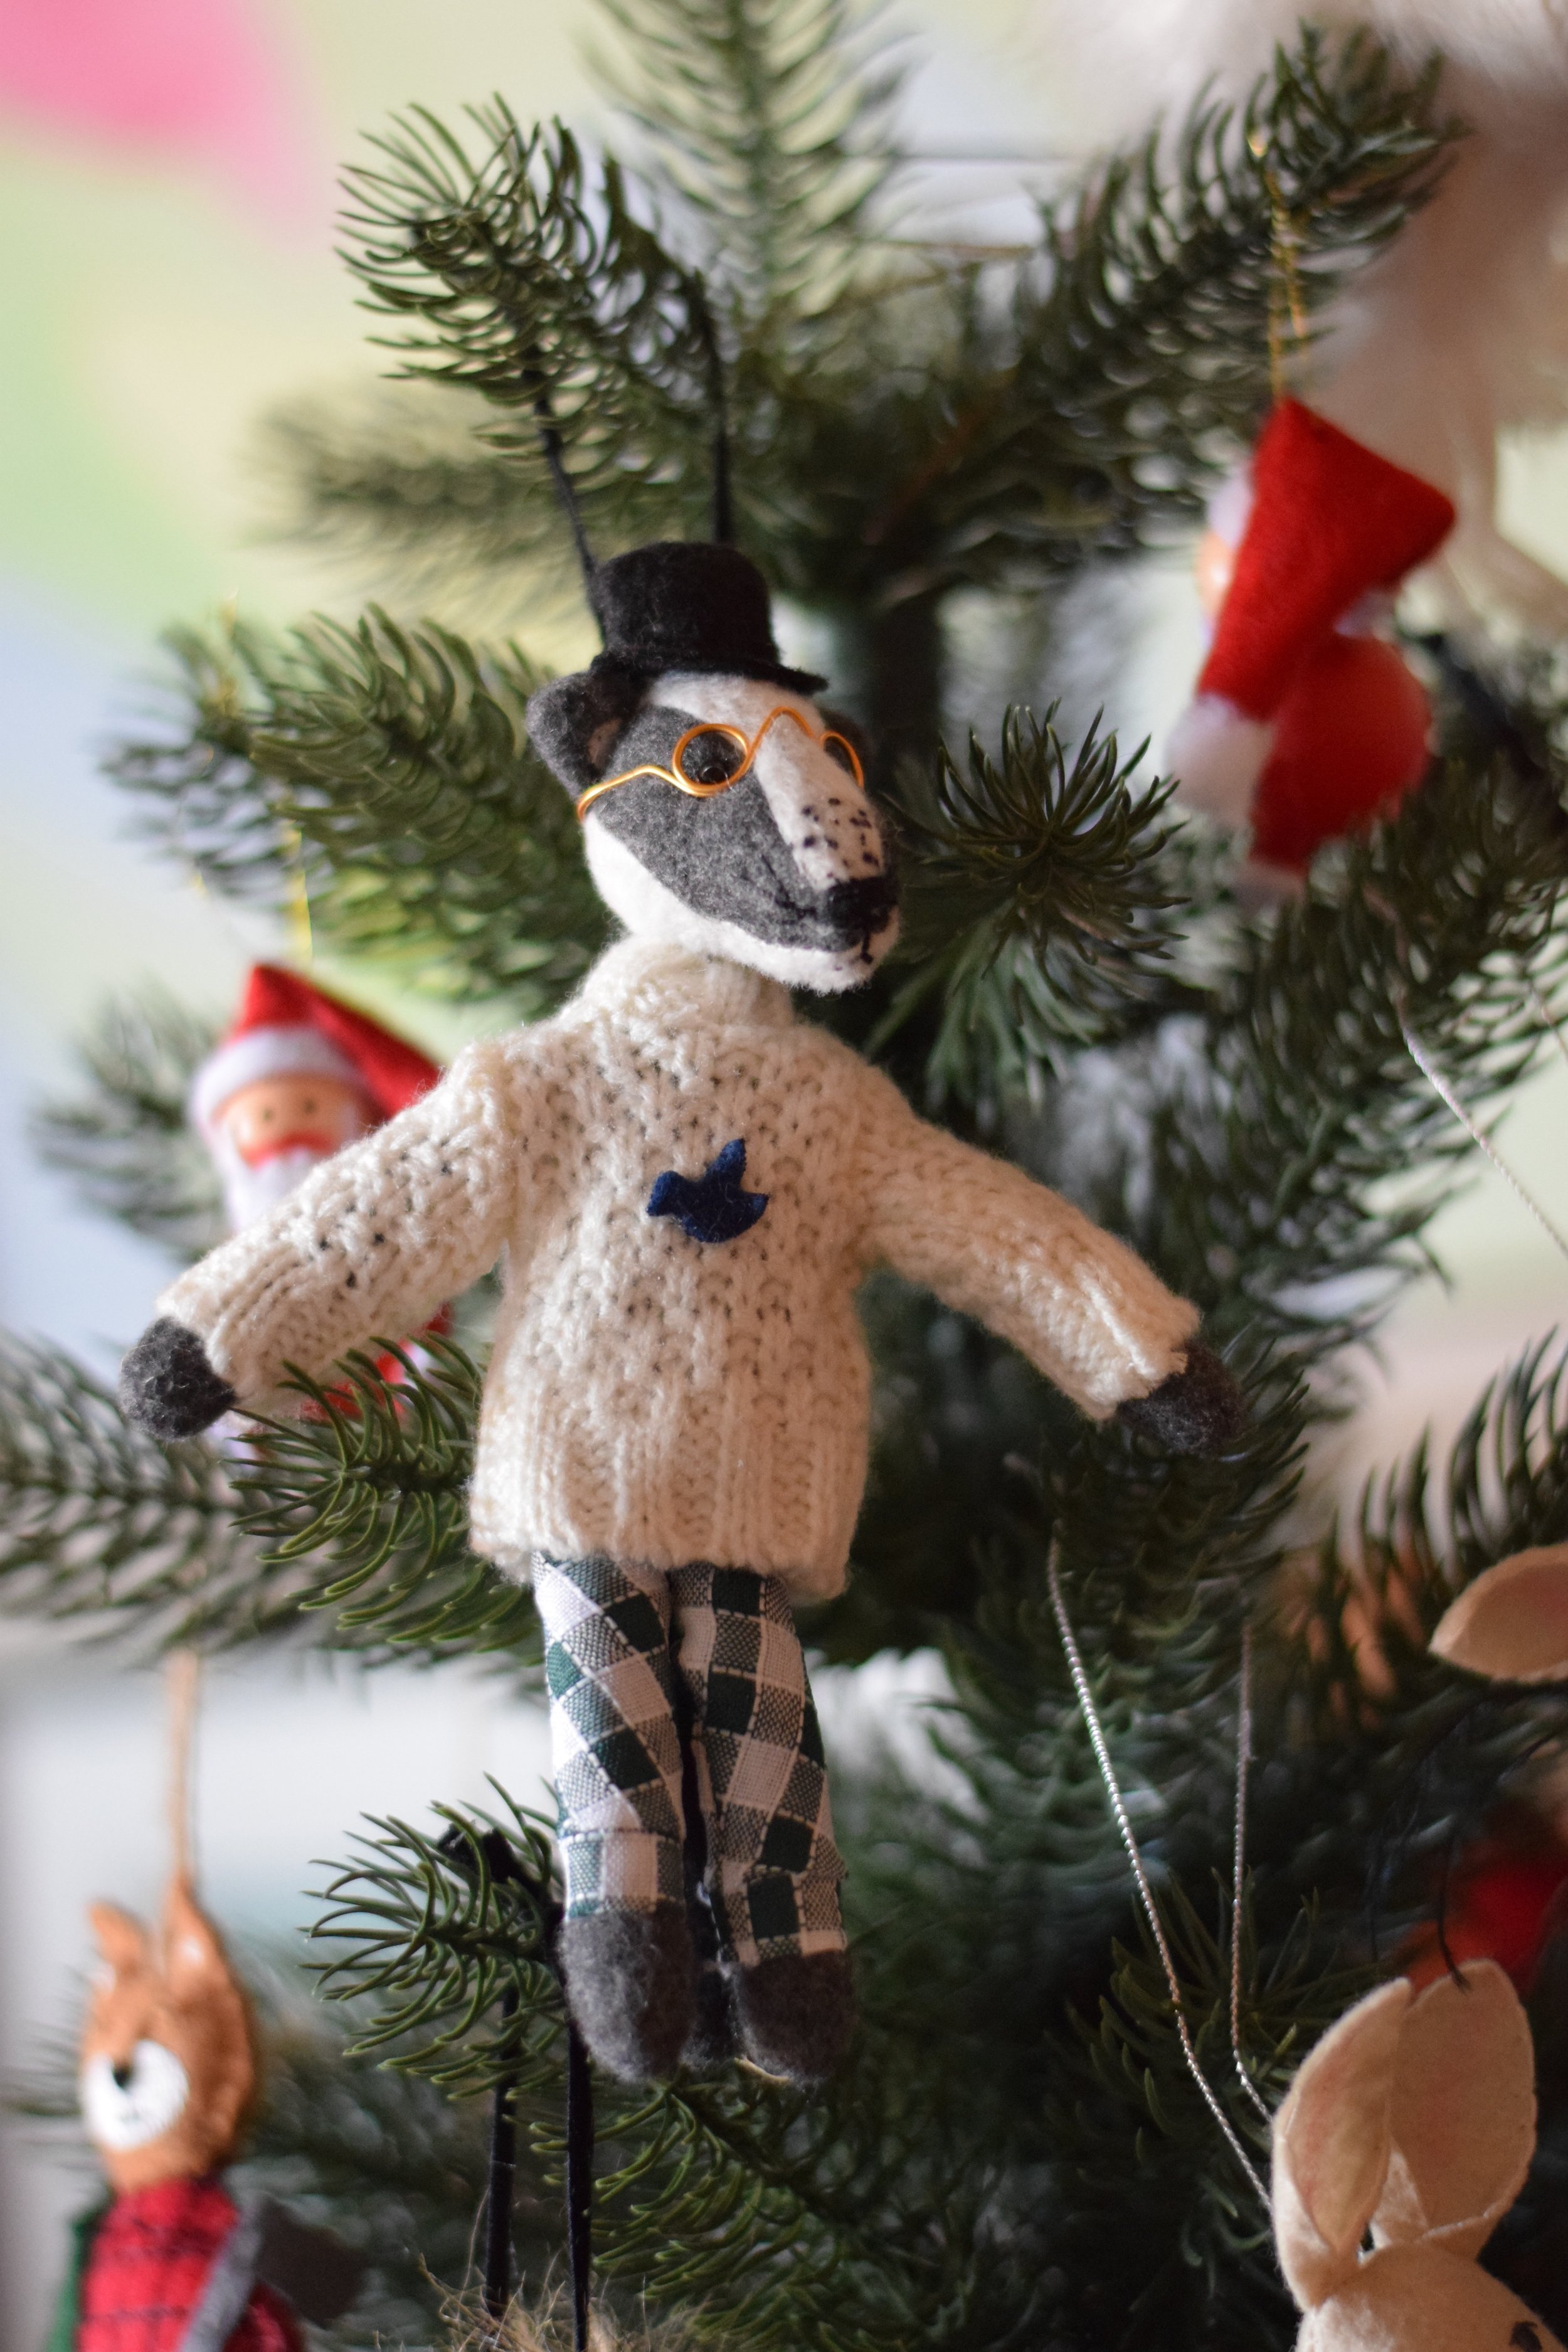 Whimsical badger wearing sweater ornament from Anthropologie.